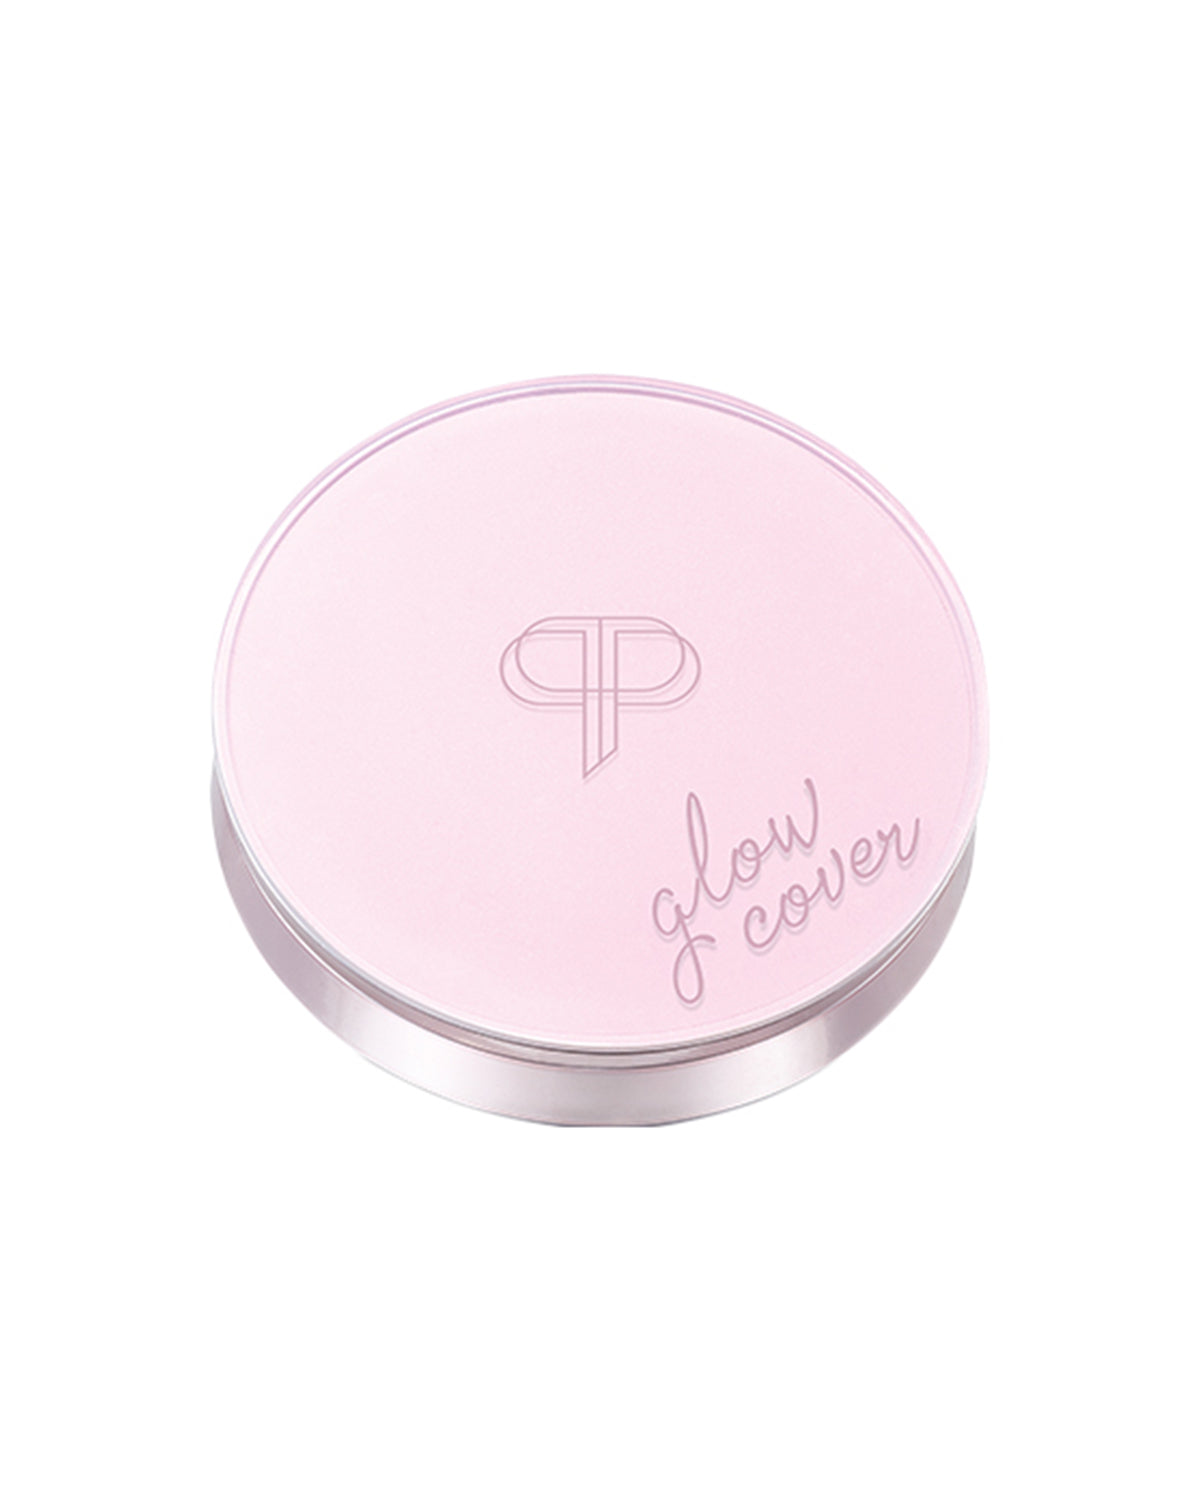 Perfume Founcushion 5G Glow Cover SPF 24 PA++